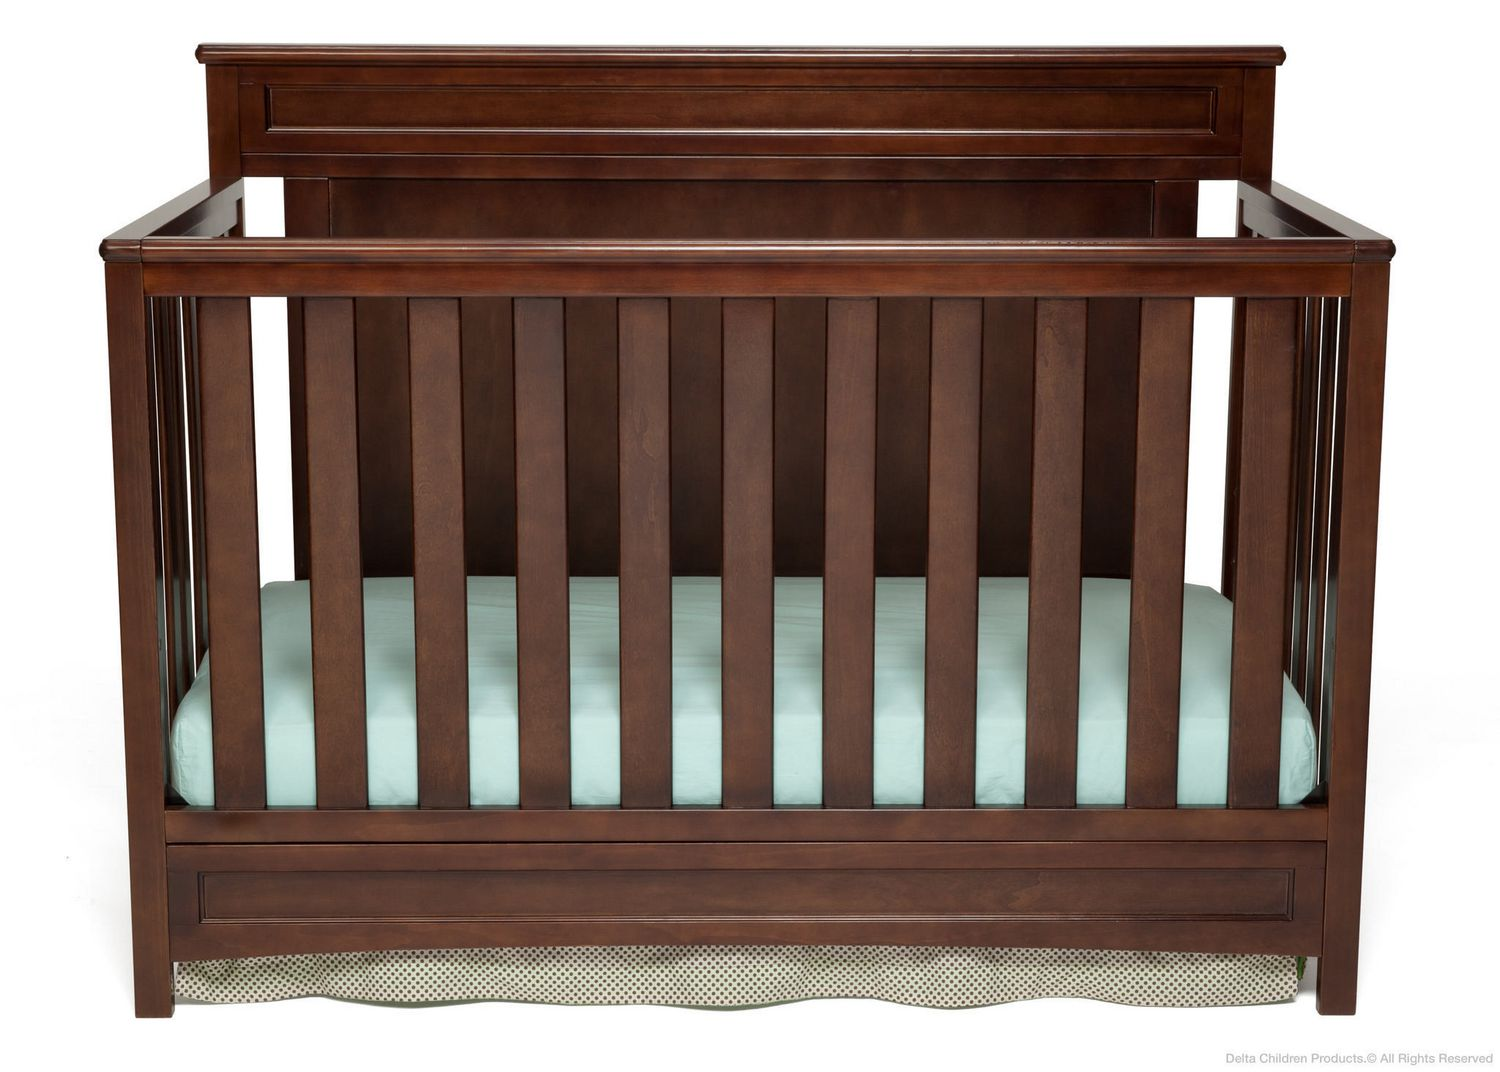 Baby bed at walmart - Delta Princeton 4 In 1 Convertible Crib Espresso